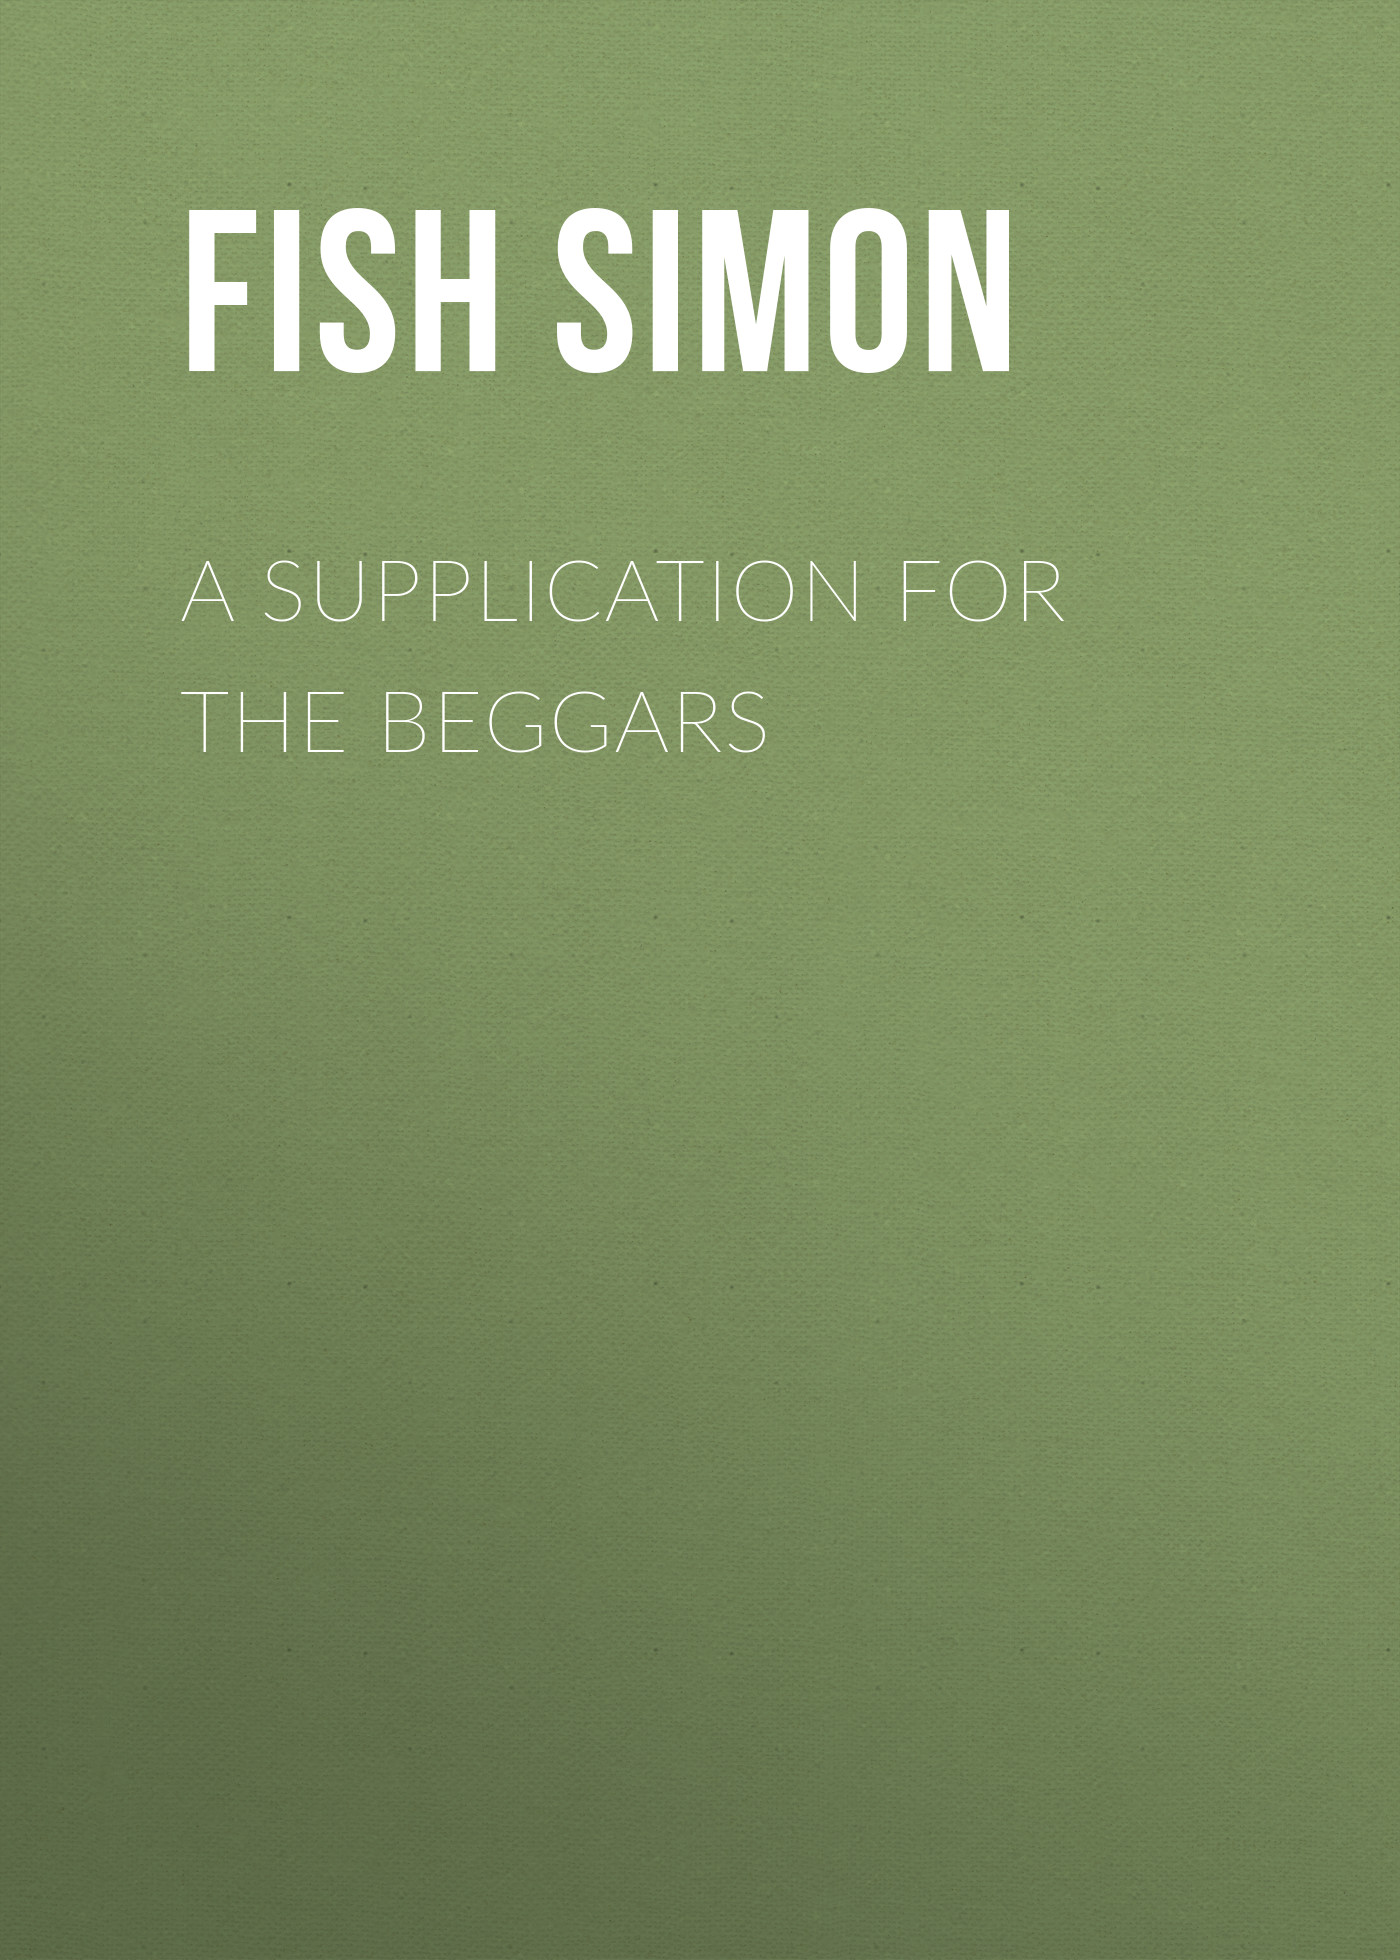 Fish Simon A Supplication for the Beggars